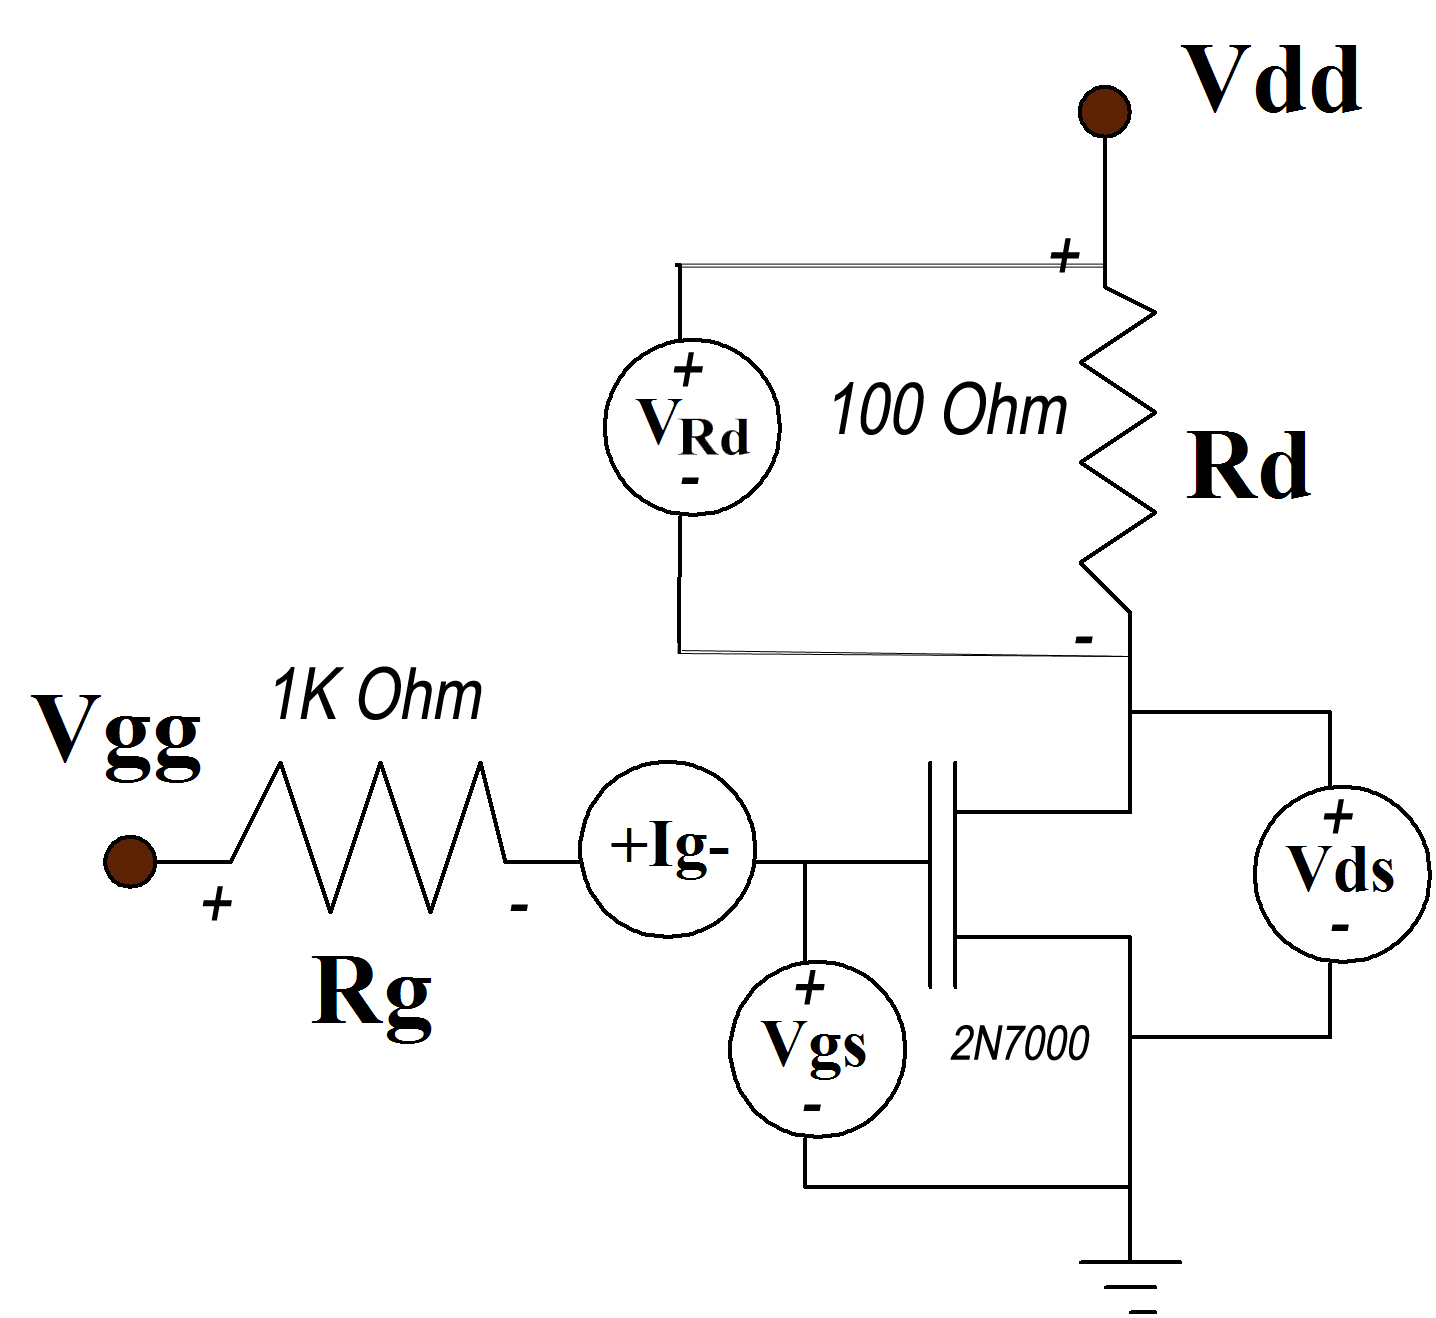 Design Of An In Vivo Radiation Measurement Scheme Using A Reliable Mosfet Circuits Tutorial Cmos Model Generation And Labview The Purpose Characterization Is To Obtain Device Operating Curves Accurately Estimate Transistor Parameters